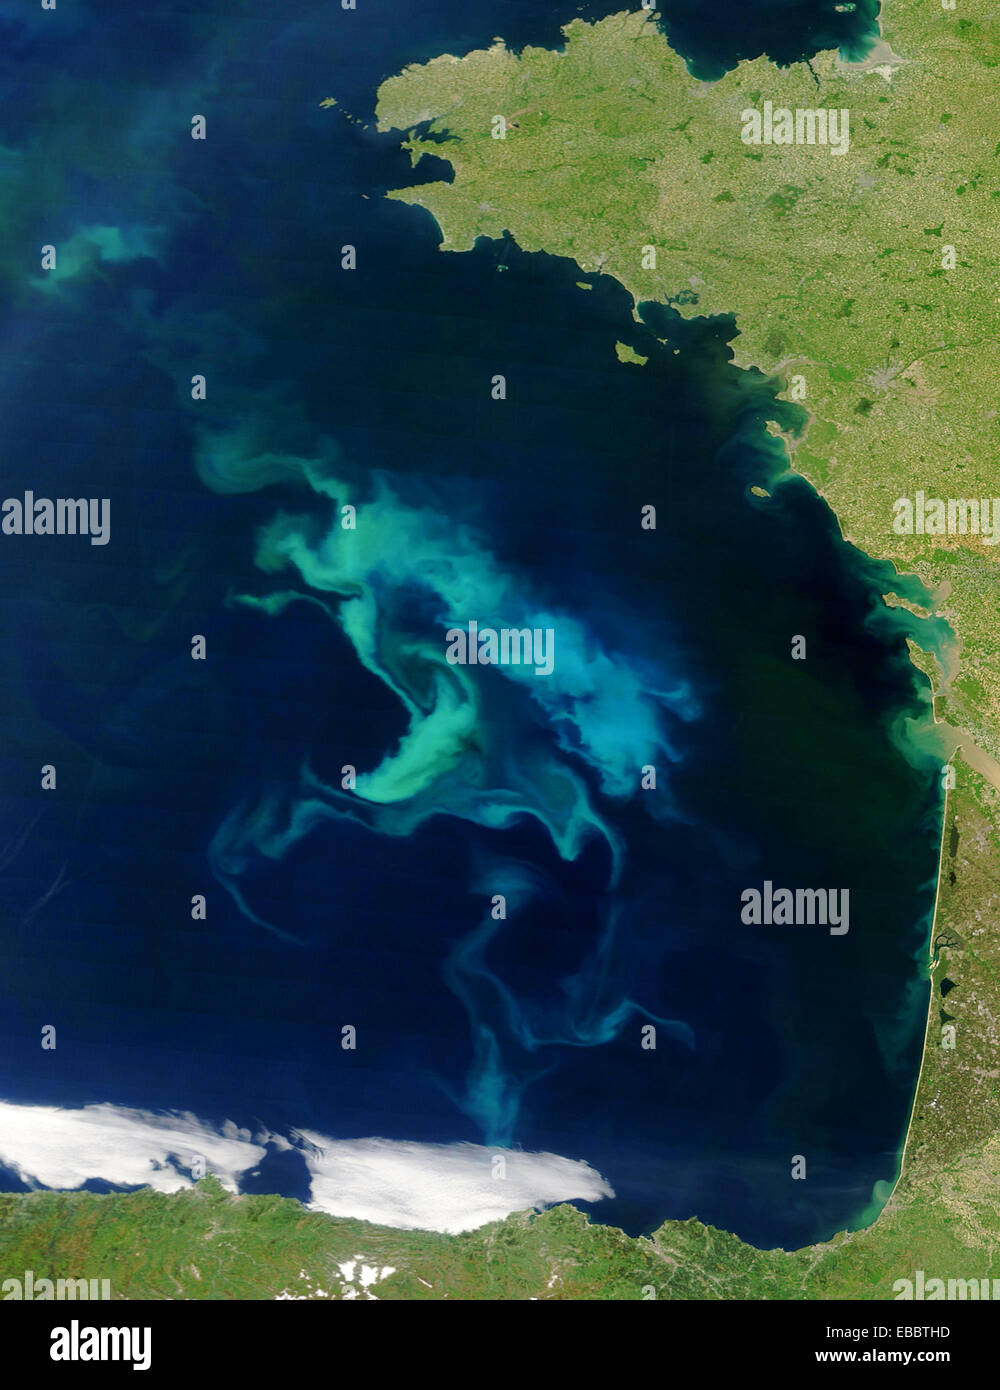 A large phytoplankton bloom in France's Bay of Biscay brought bright swirls of light blue and turquoise to the surface - Stock Image